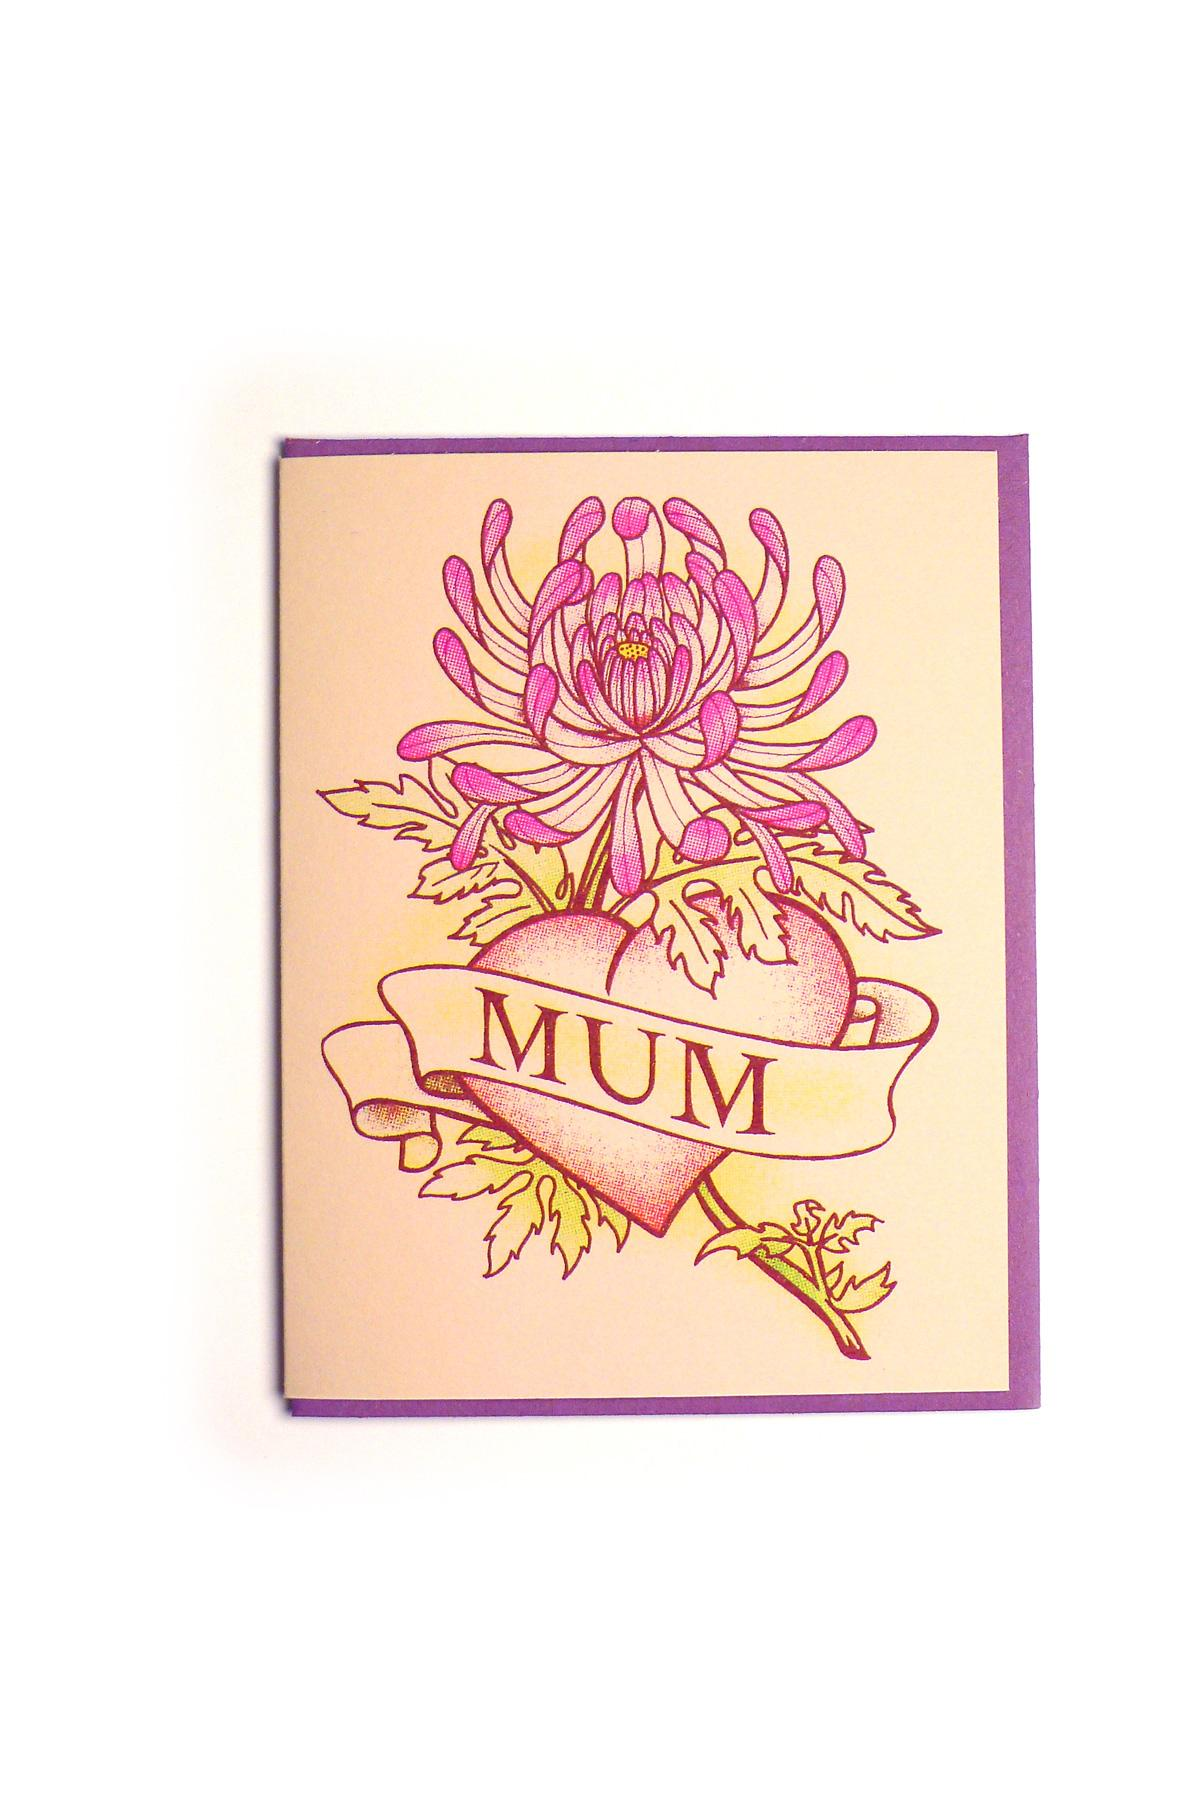 Kid Icarus - MOTHERS DAY - Mum Floral Tattoo